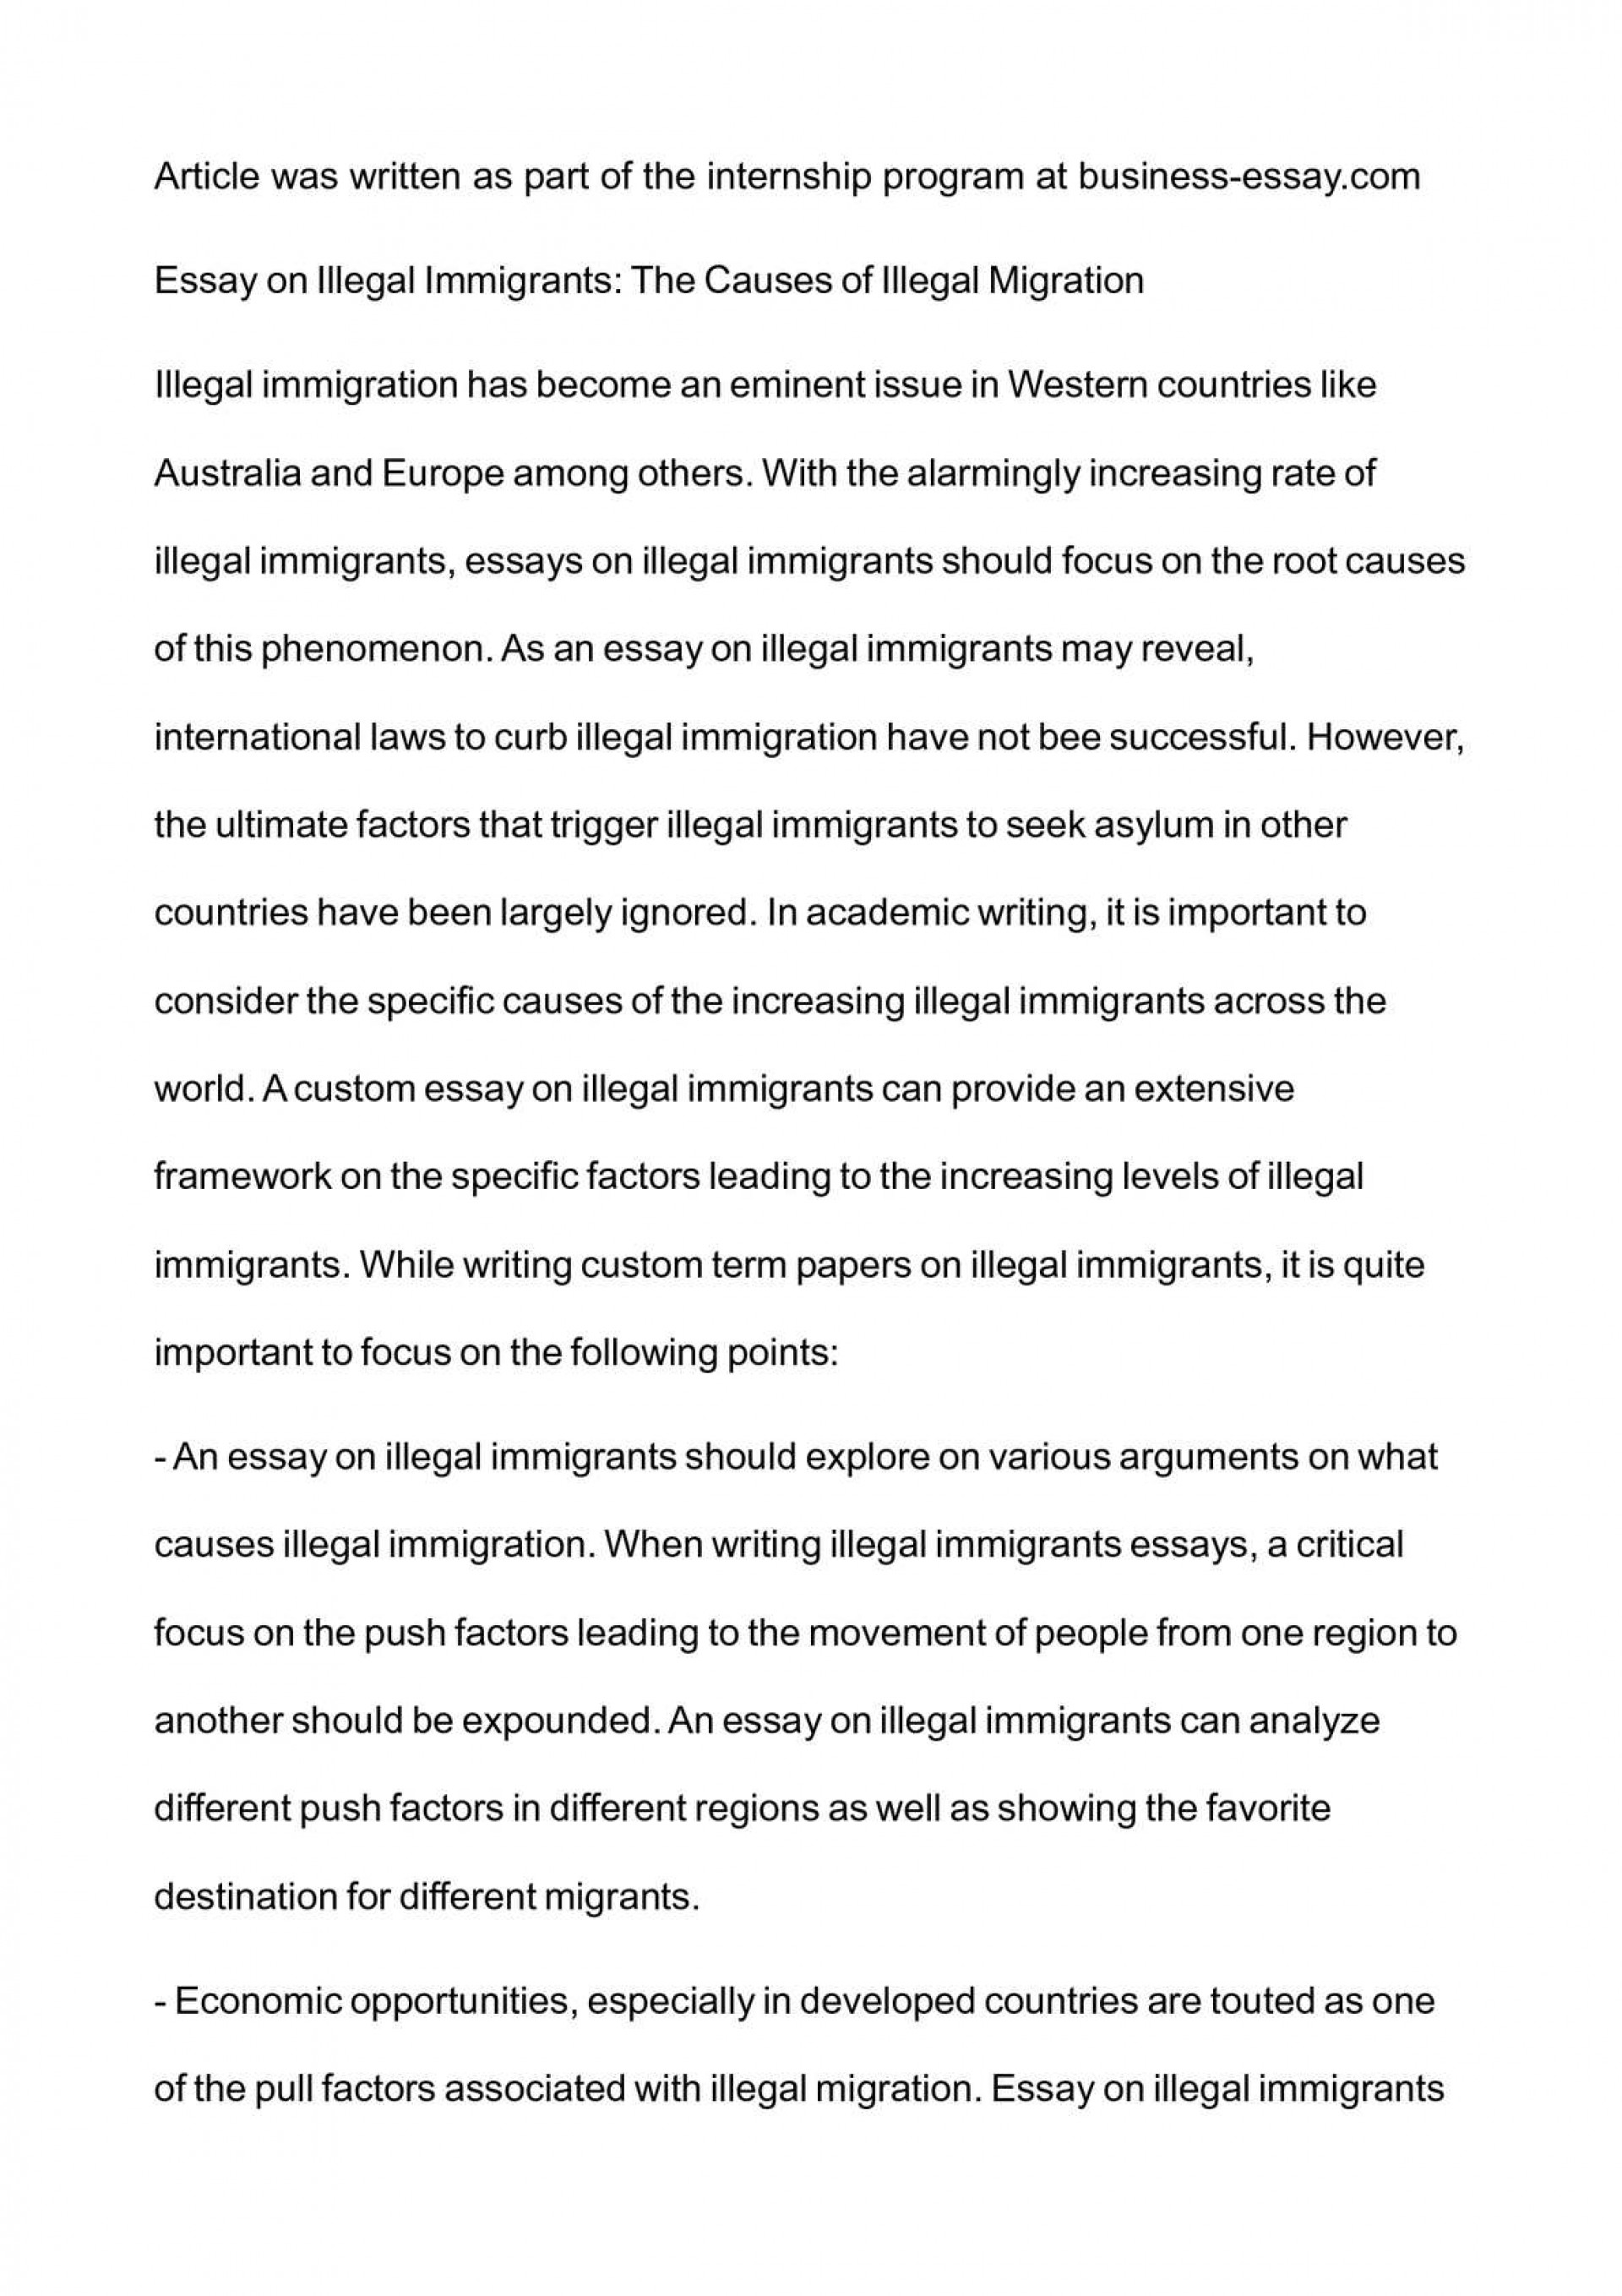 002 Essay Example Argumentative On Immigration Illegal P Against Thesis Pro Outline Wonderful Laws Topics 1920